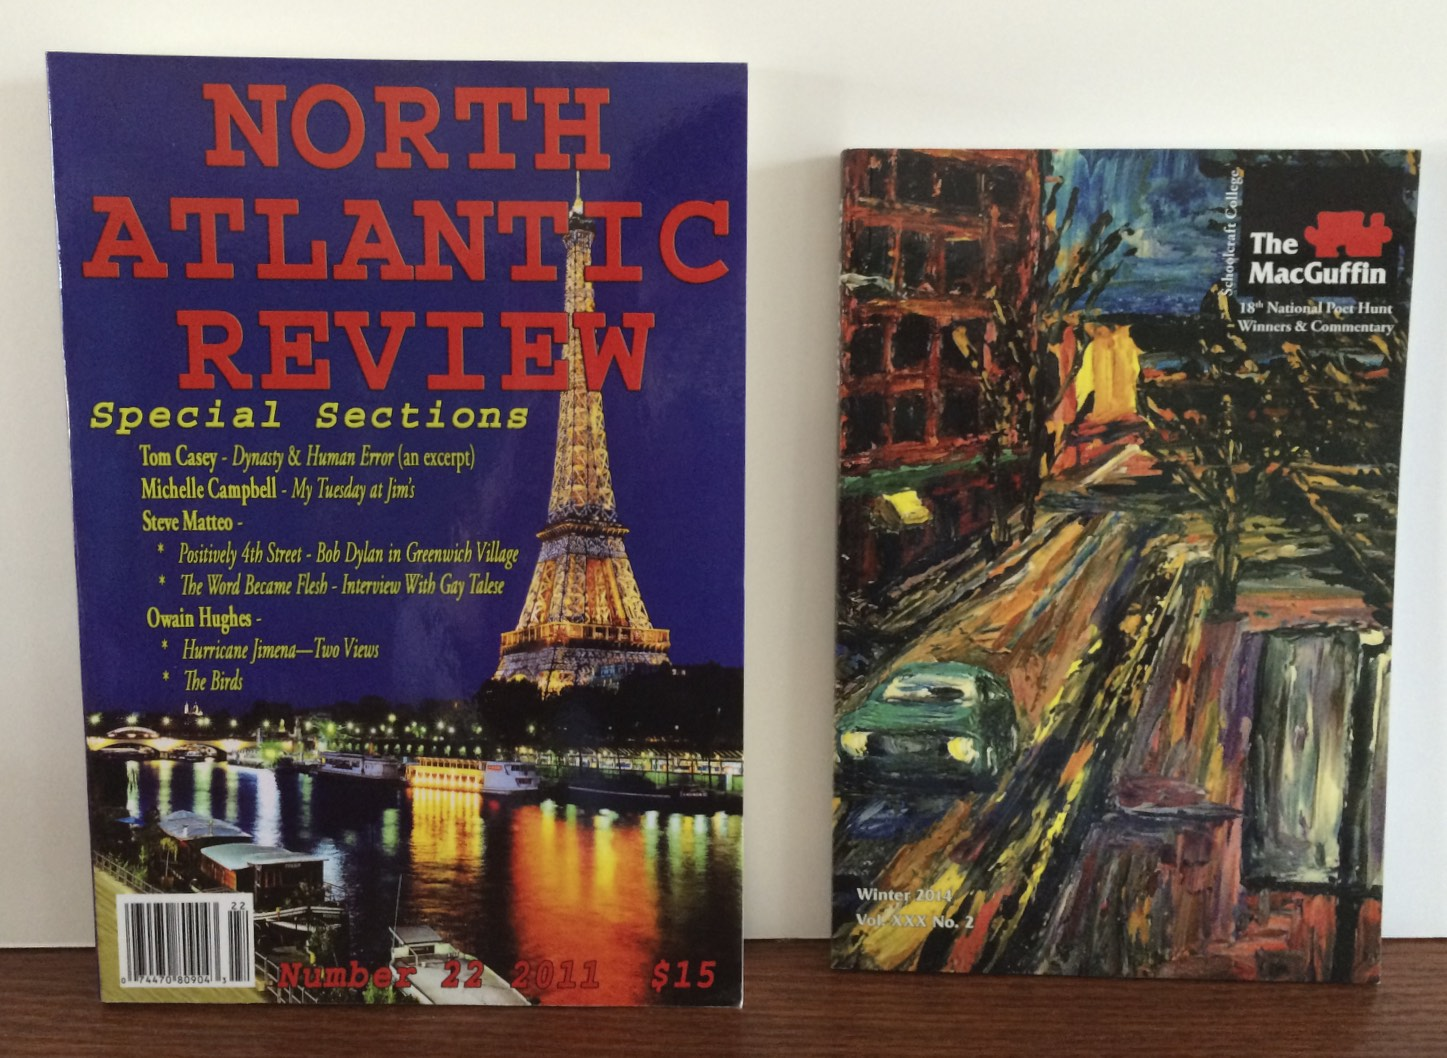 Short Stories Published in The North Atlantic Review and The MacGuffin